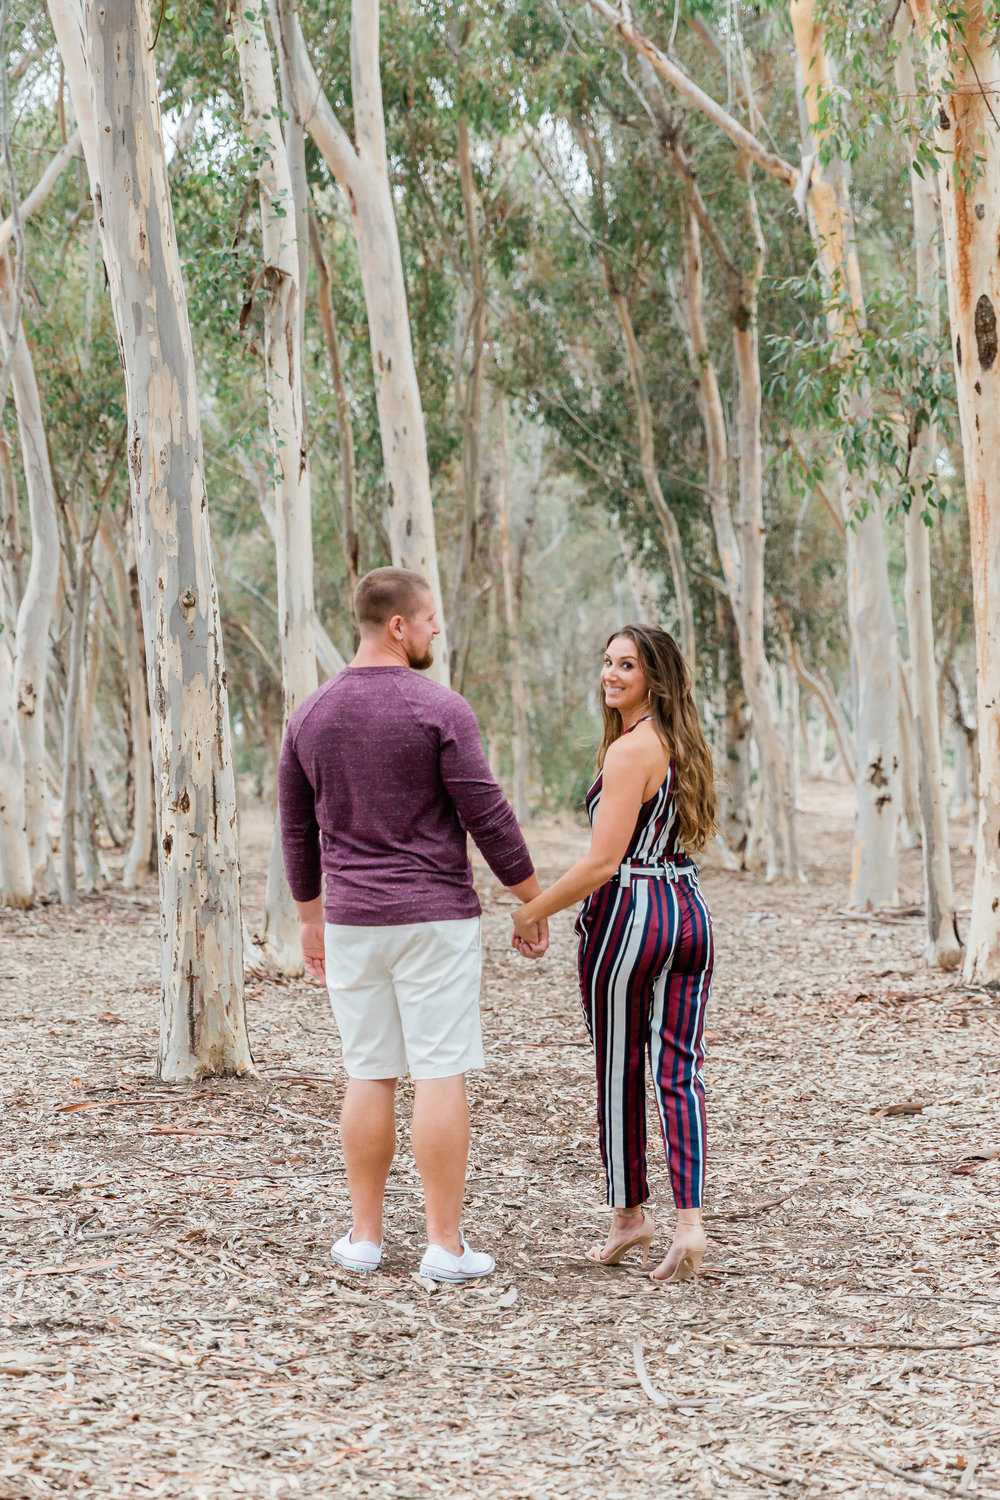 KimandPatrick-Engaged-LaurenAlissePhotography-84.jpg